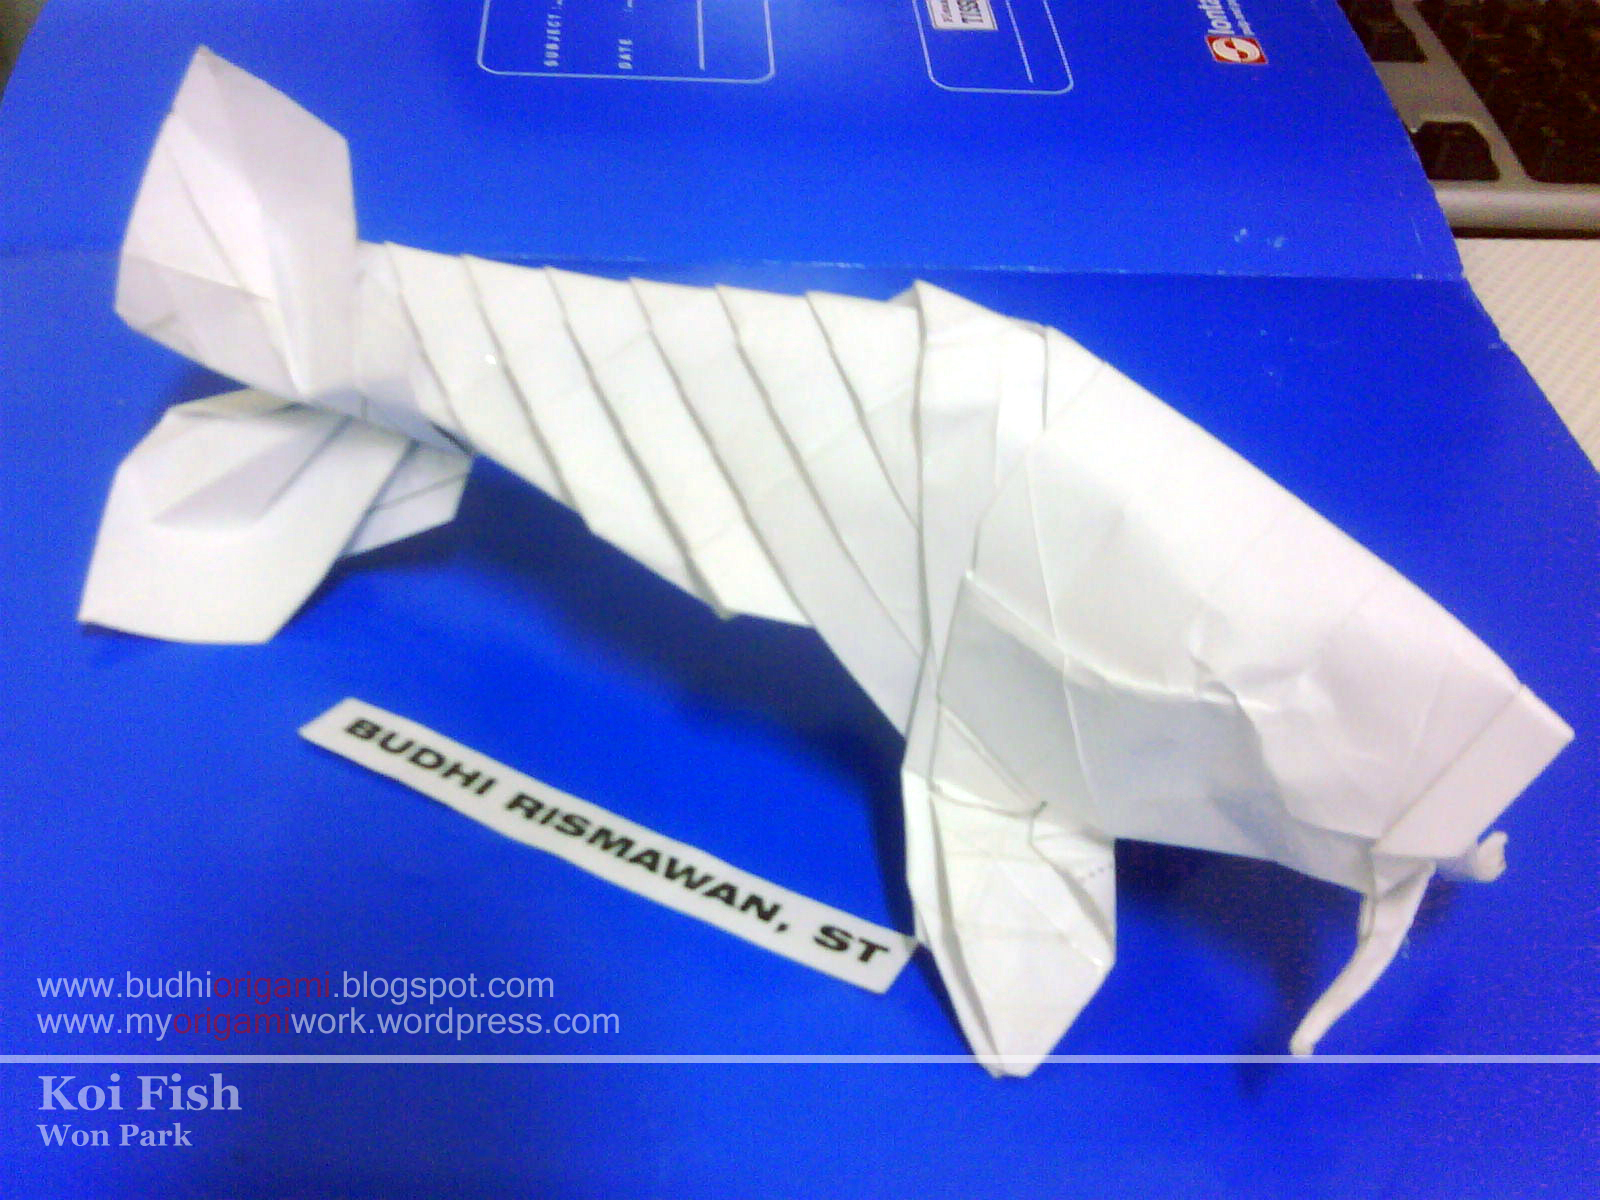 Medium origami myorigamiwork for Origami koi fish